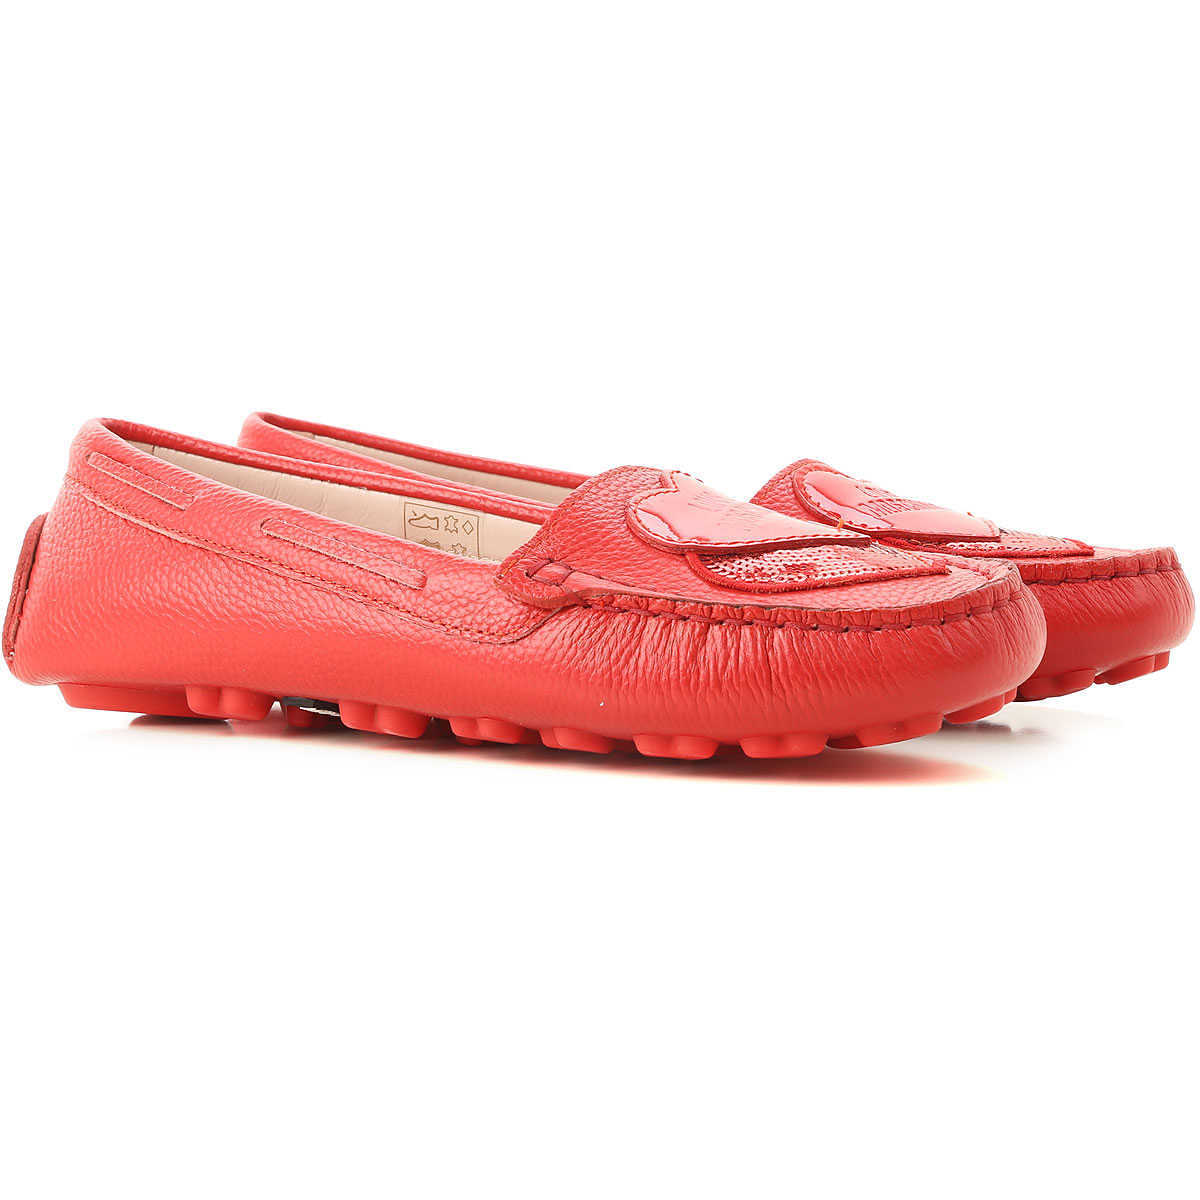 Moschino Loafers for Women On Sale Red DK - GOOFASH - Womens FLAT SHOES